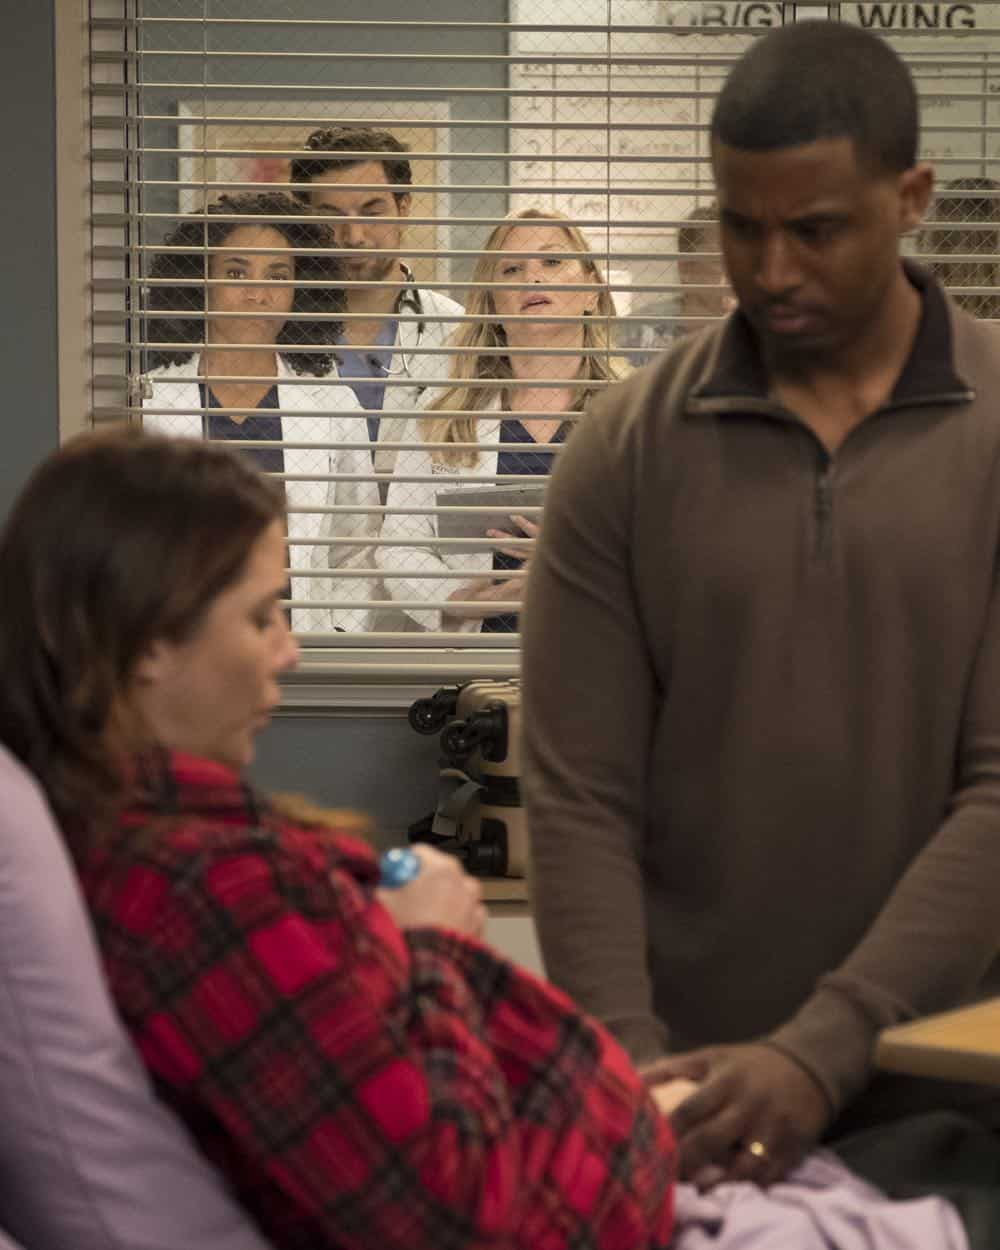 Greys Anatomy Episode 22 Season 14 Fight For Your Mind 16